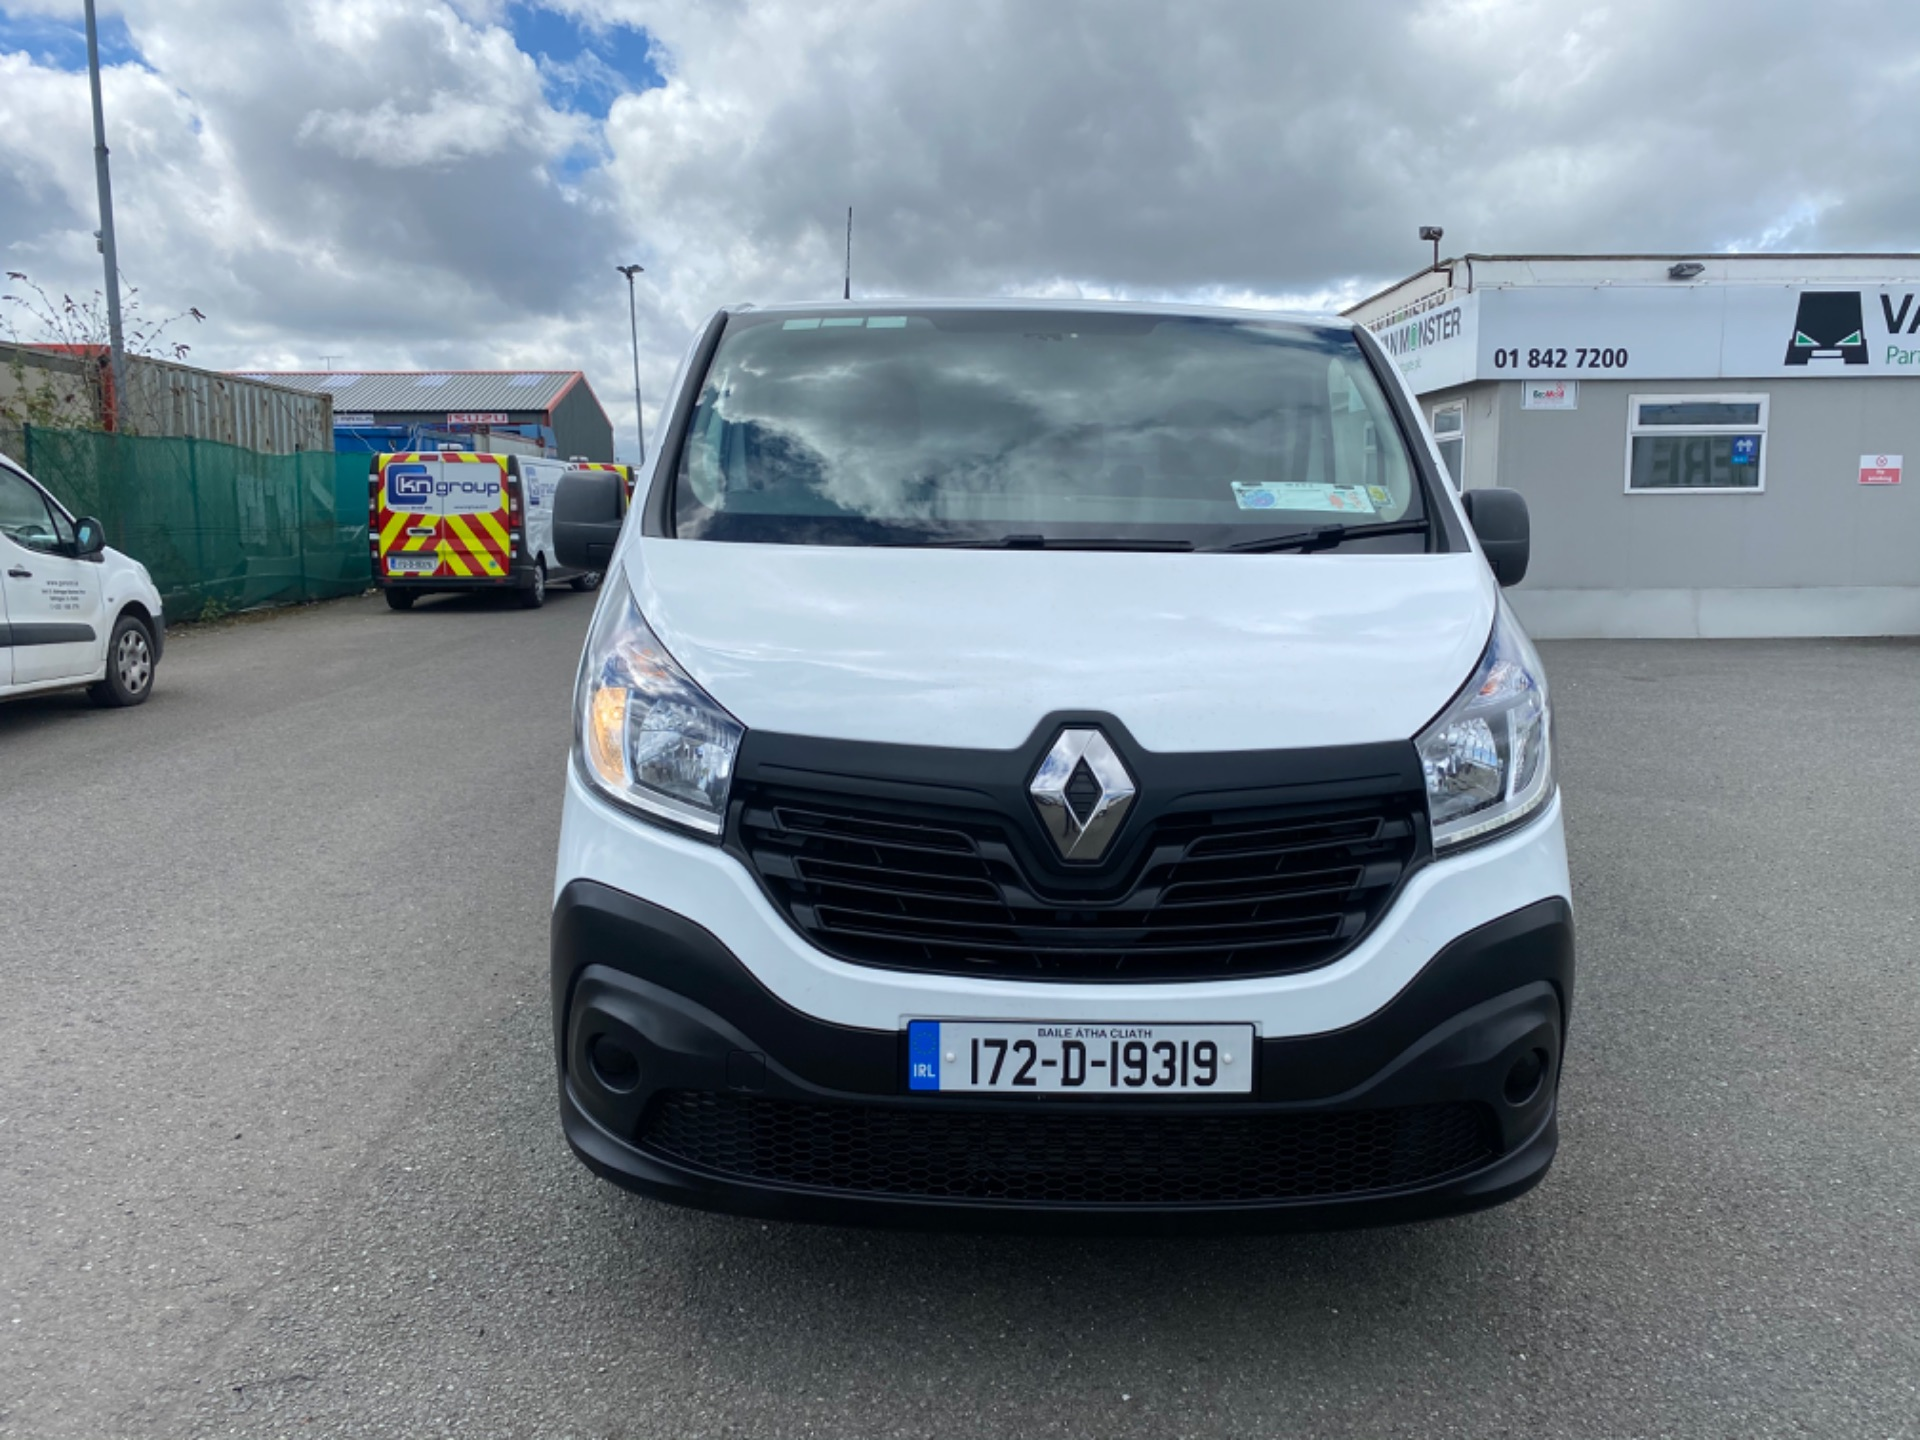 2017 Renault Trafic LL29 DCI 120 Business 3DR (172D19319) Image 2